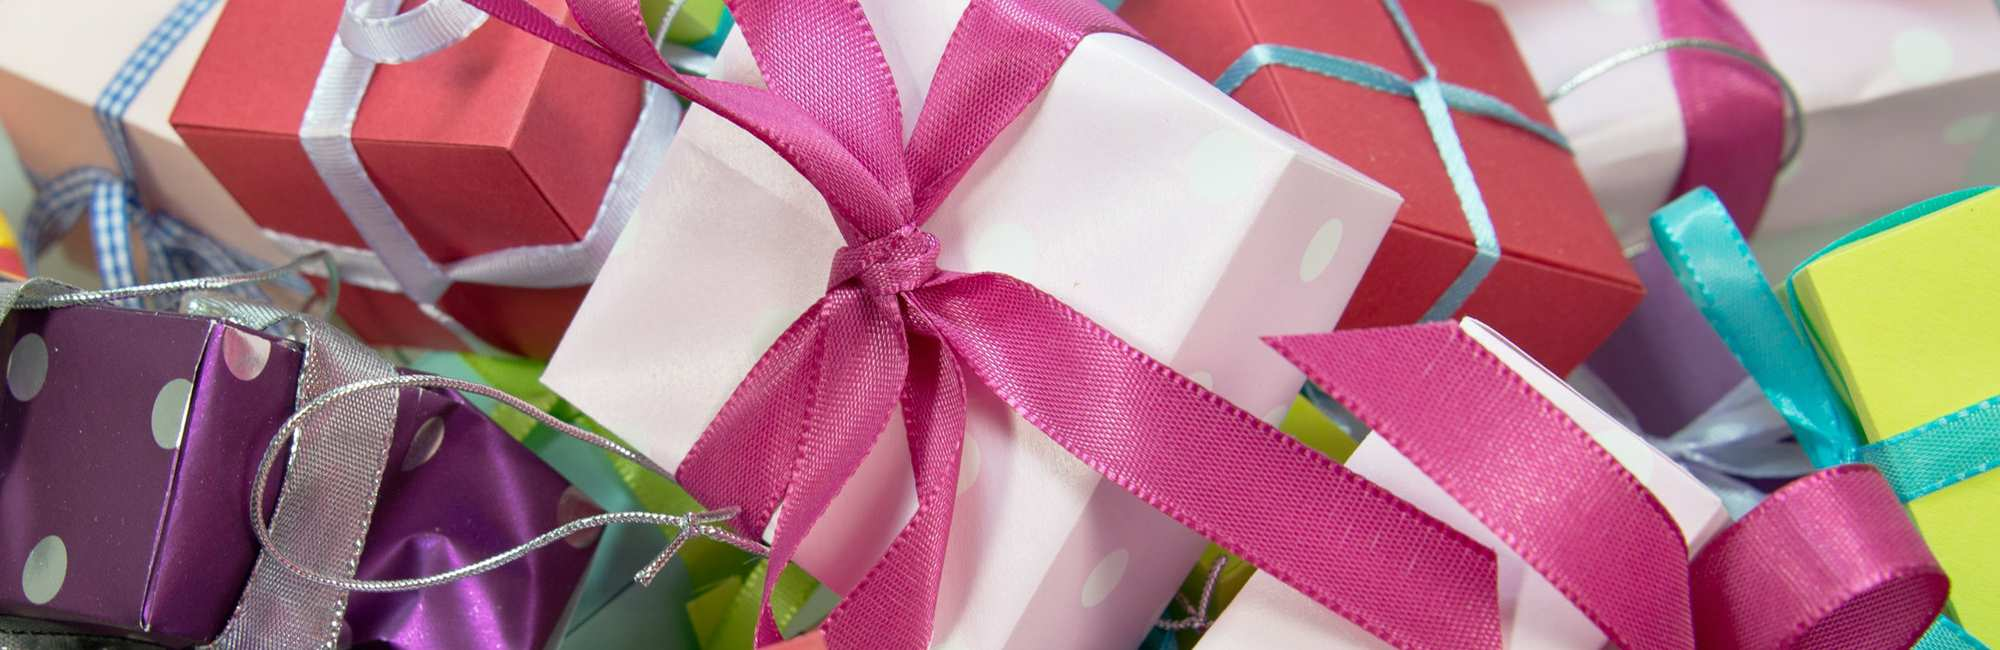 Packages & Gift Vouchers